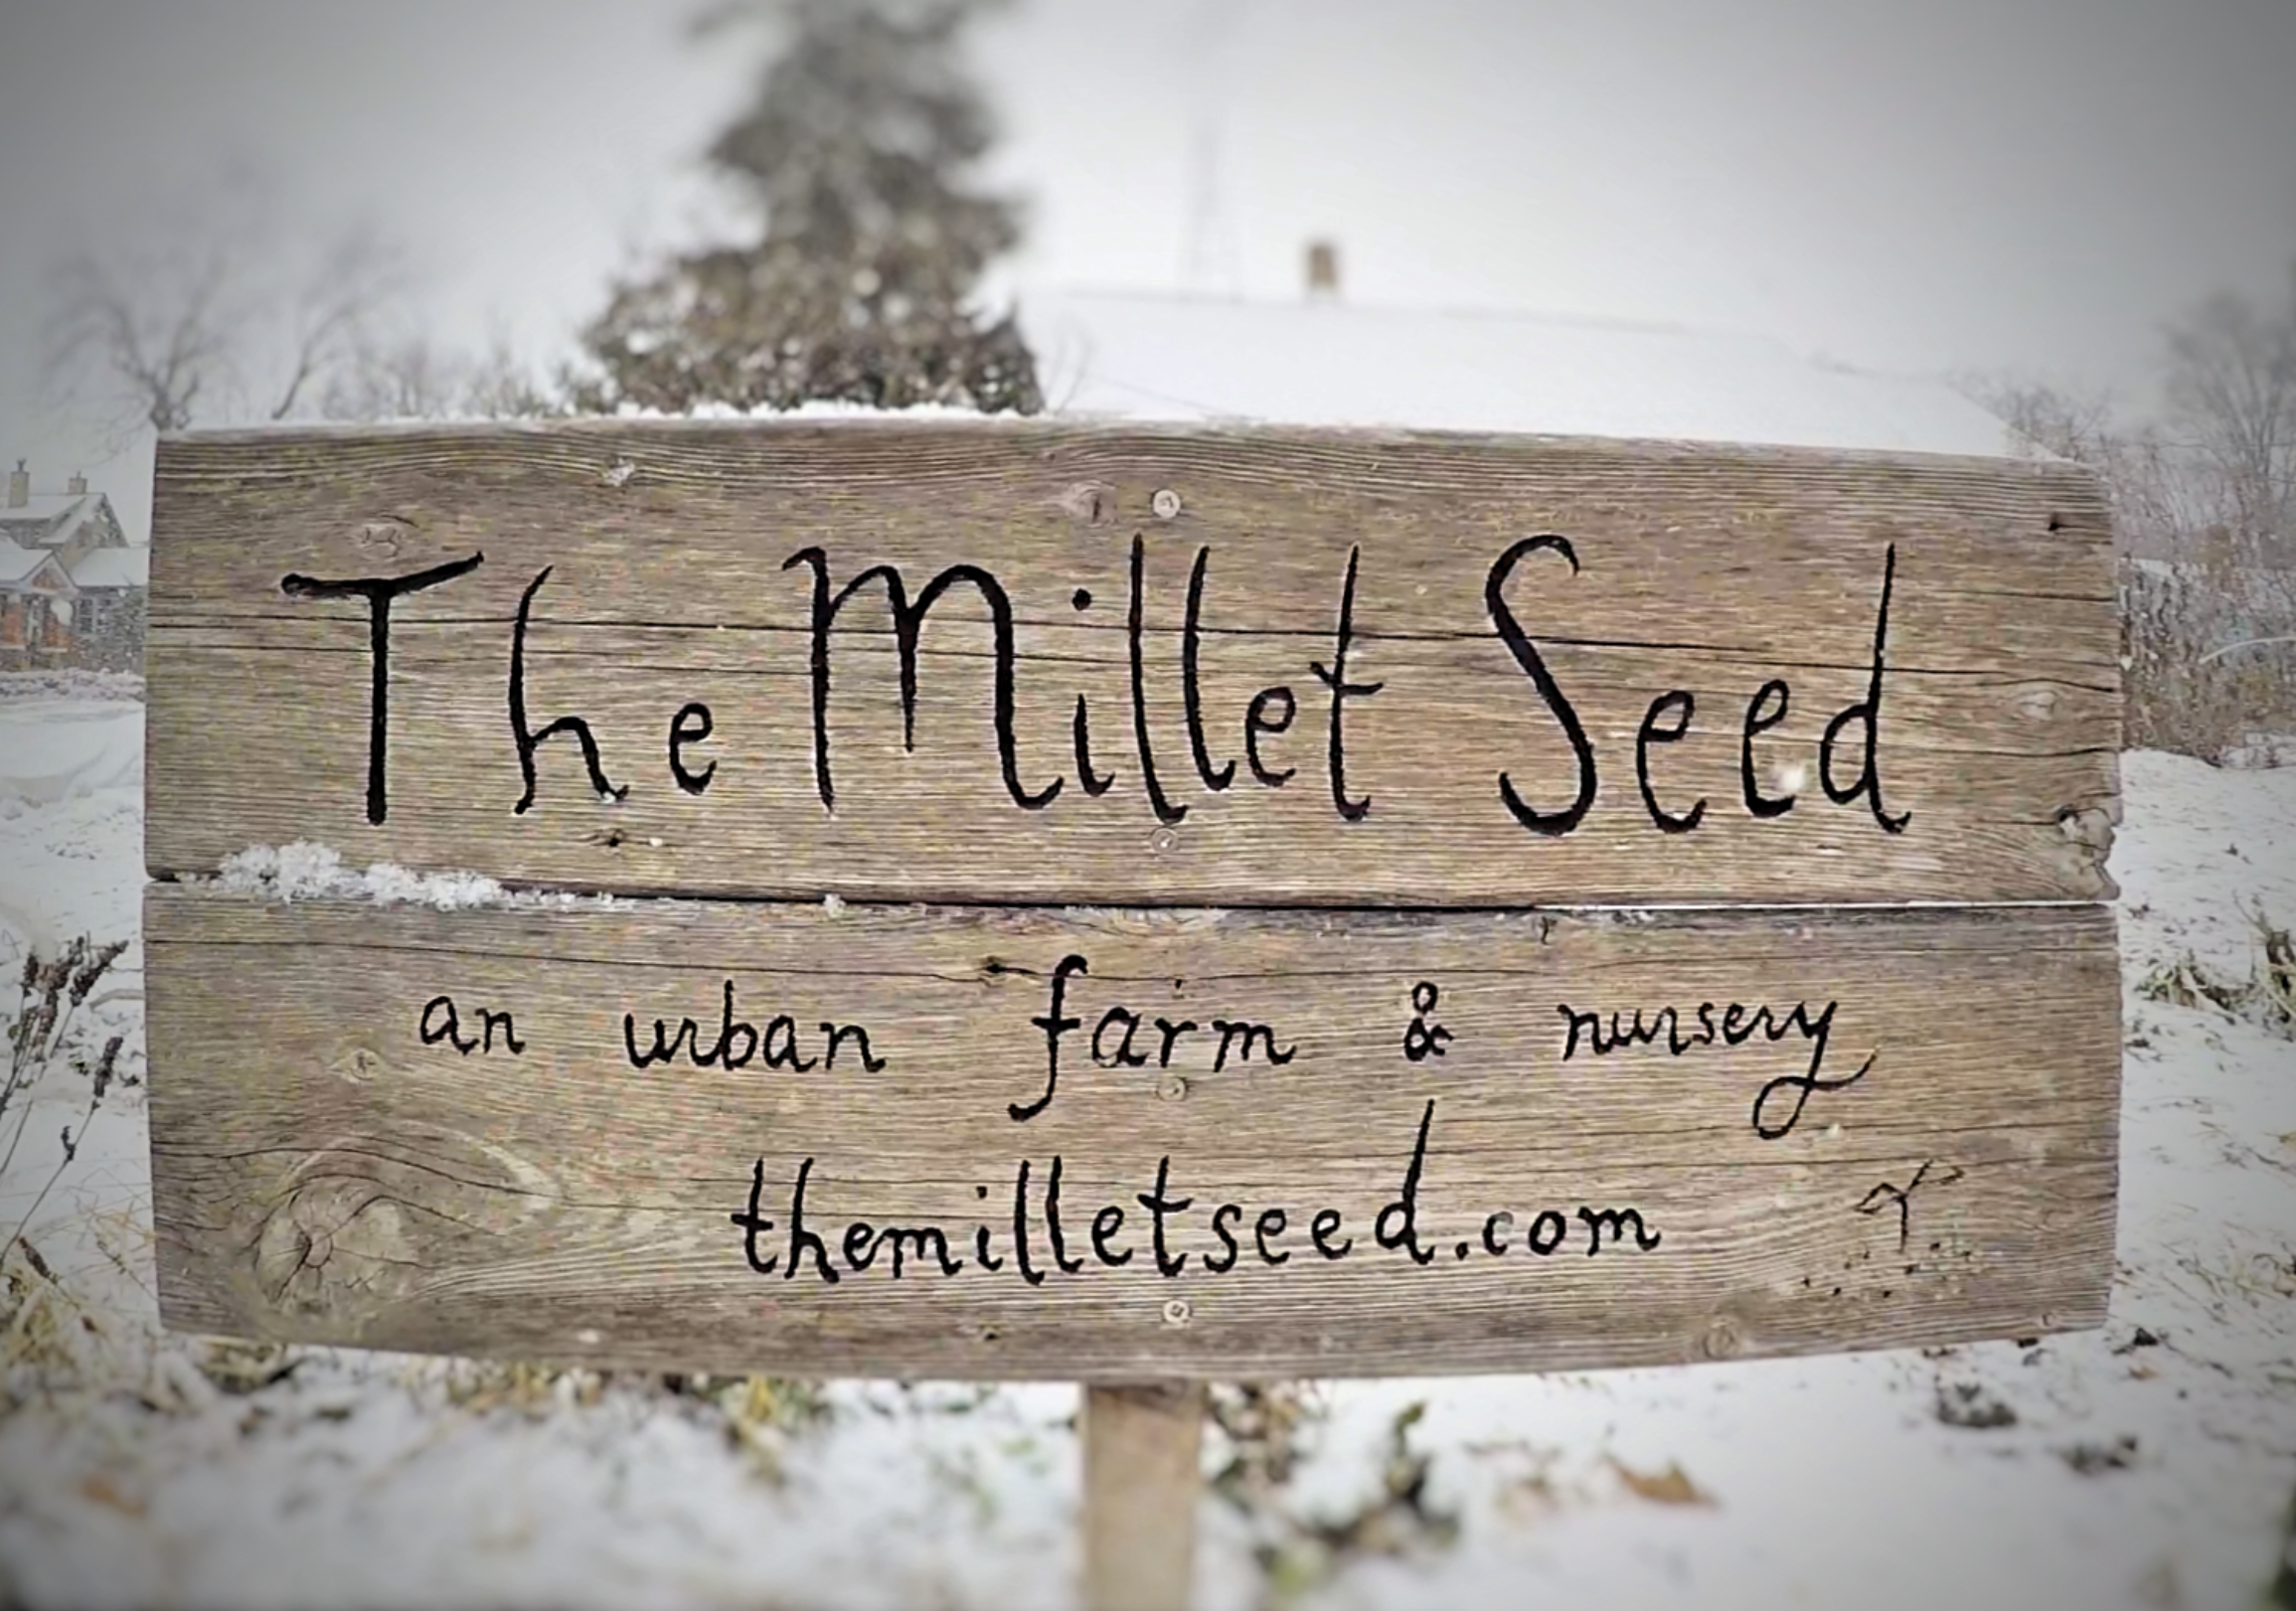 The Millet Seed - IOWA CITY, IAA hyper local in-town veggie CSA bringing organic food to 20+ community members with no-till bed prep and next to zero input from fossil fuels.www.themilletseed.com